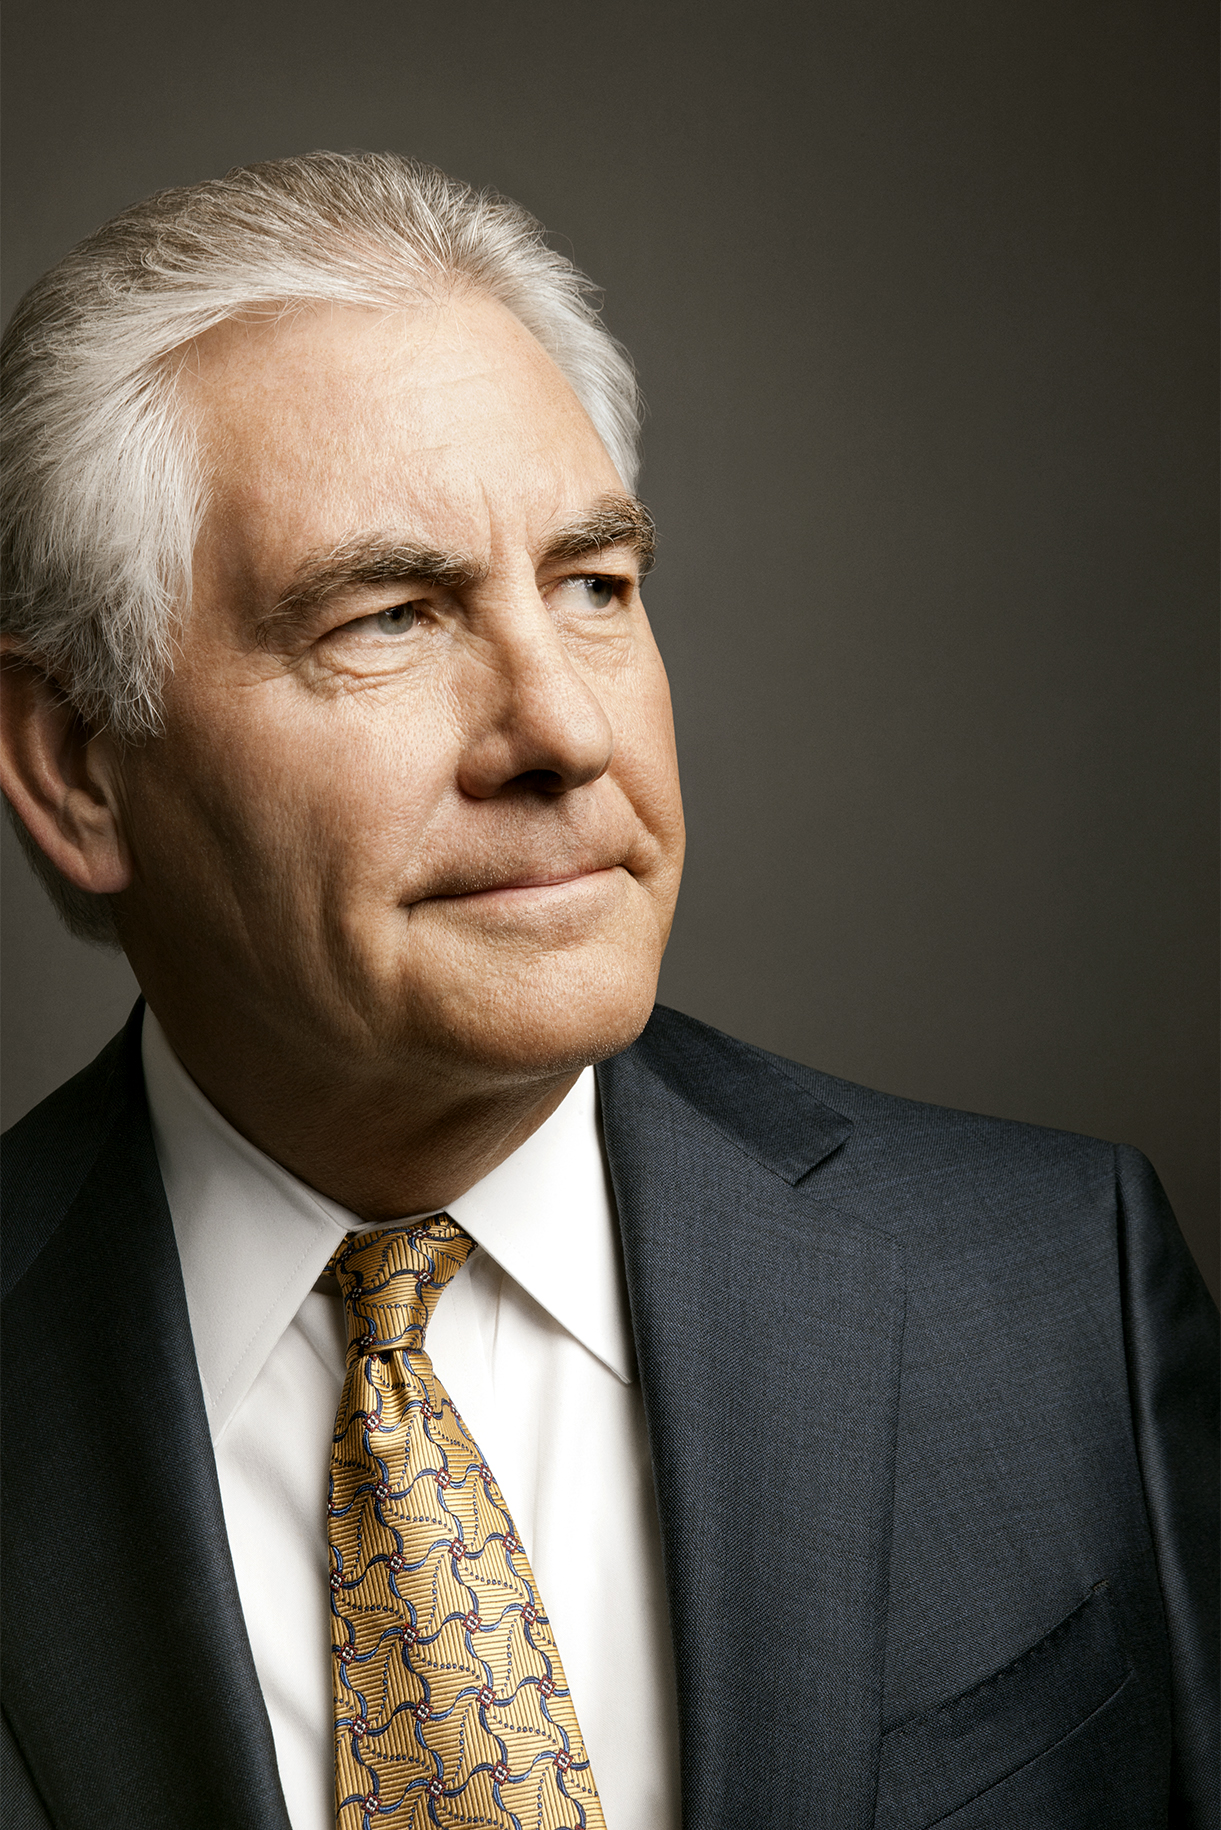 Exxon Mobil CEO Rex Tillerson photographed in 2012